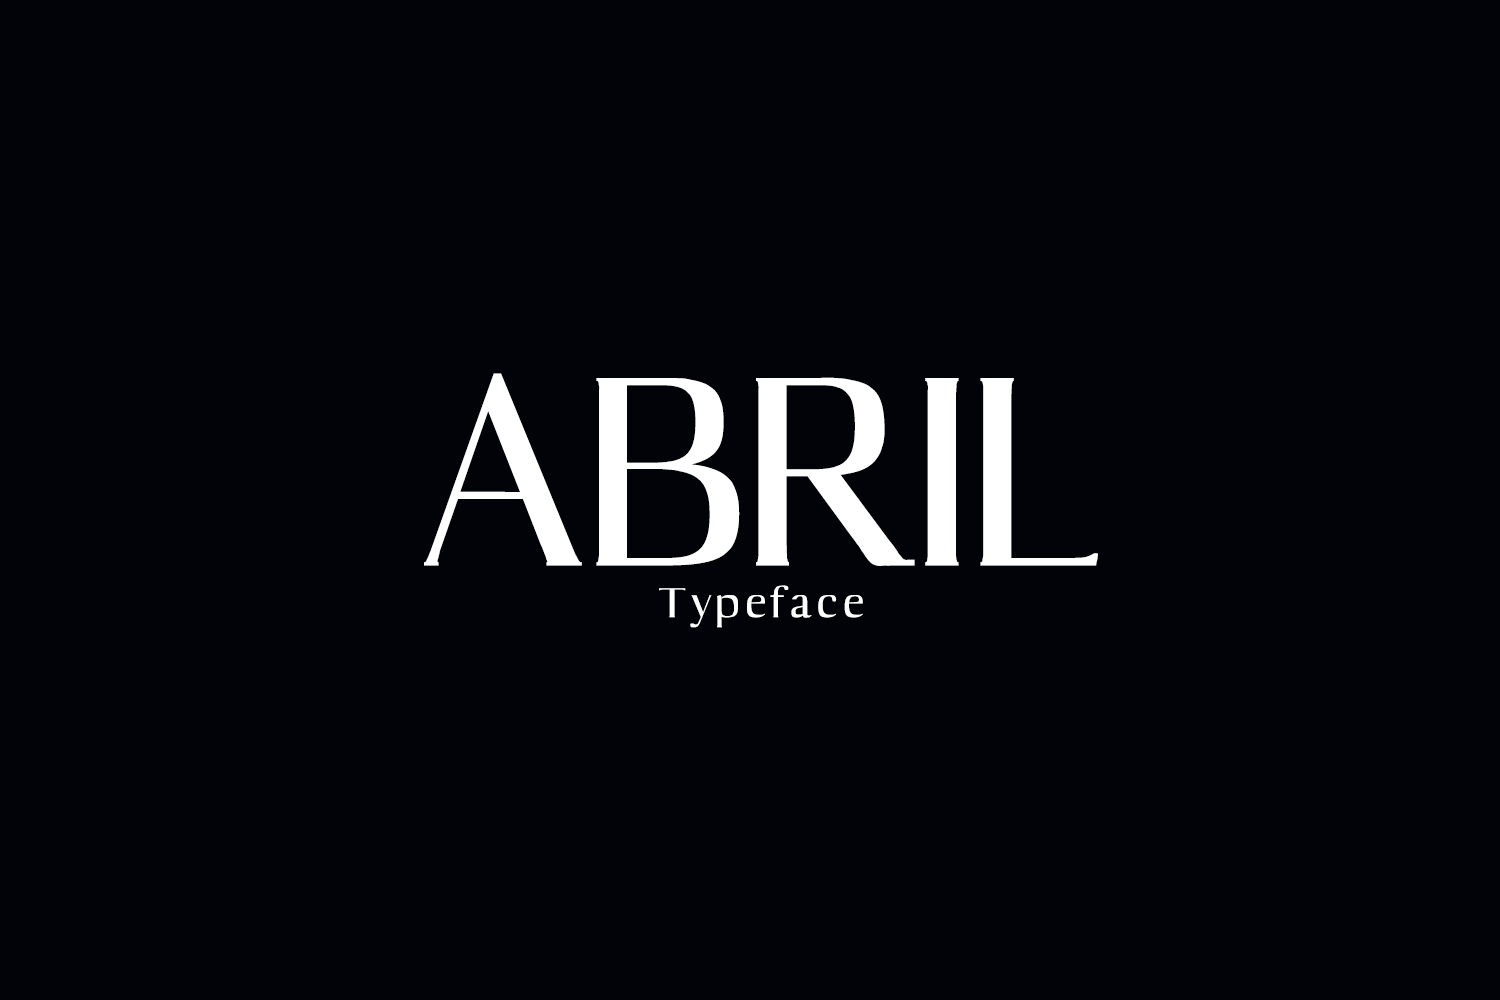 Abril Serif Typeface example image 1